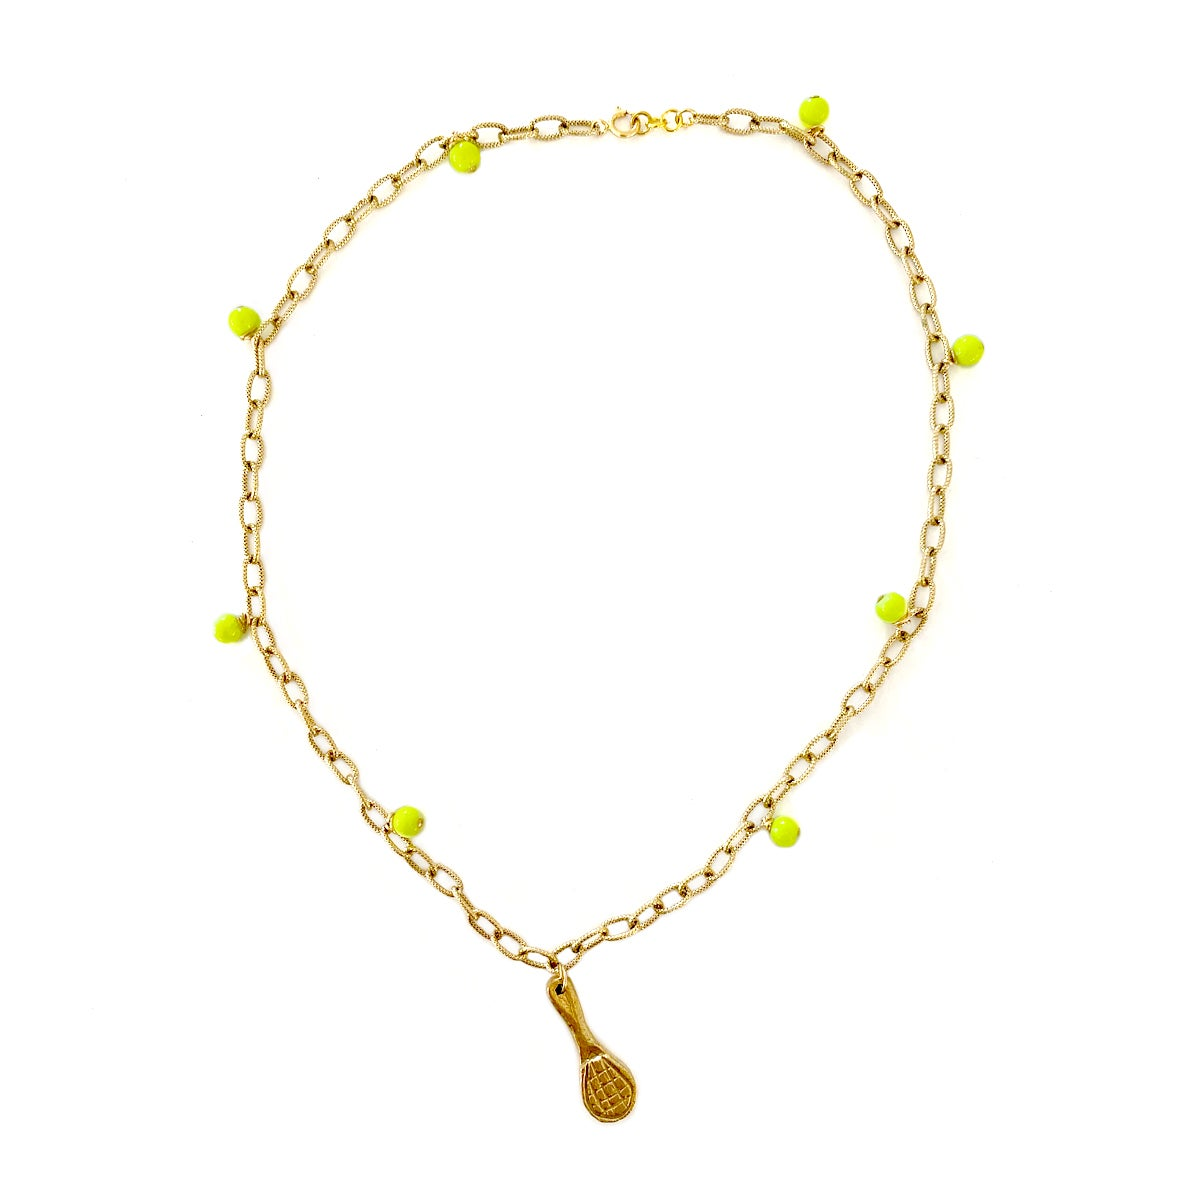 Image of Ulsi Omen x The Courts Tennis Necklace